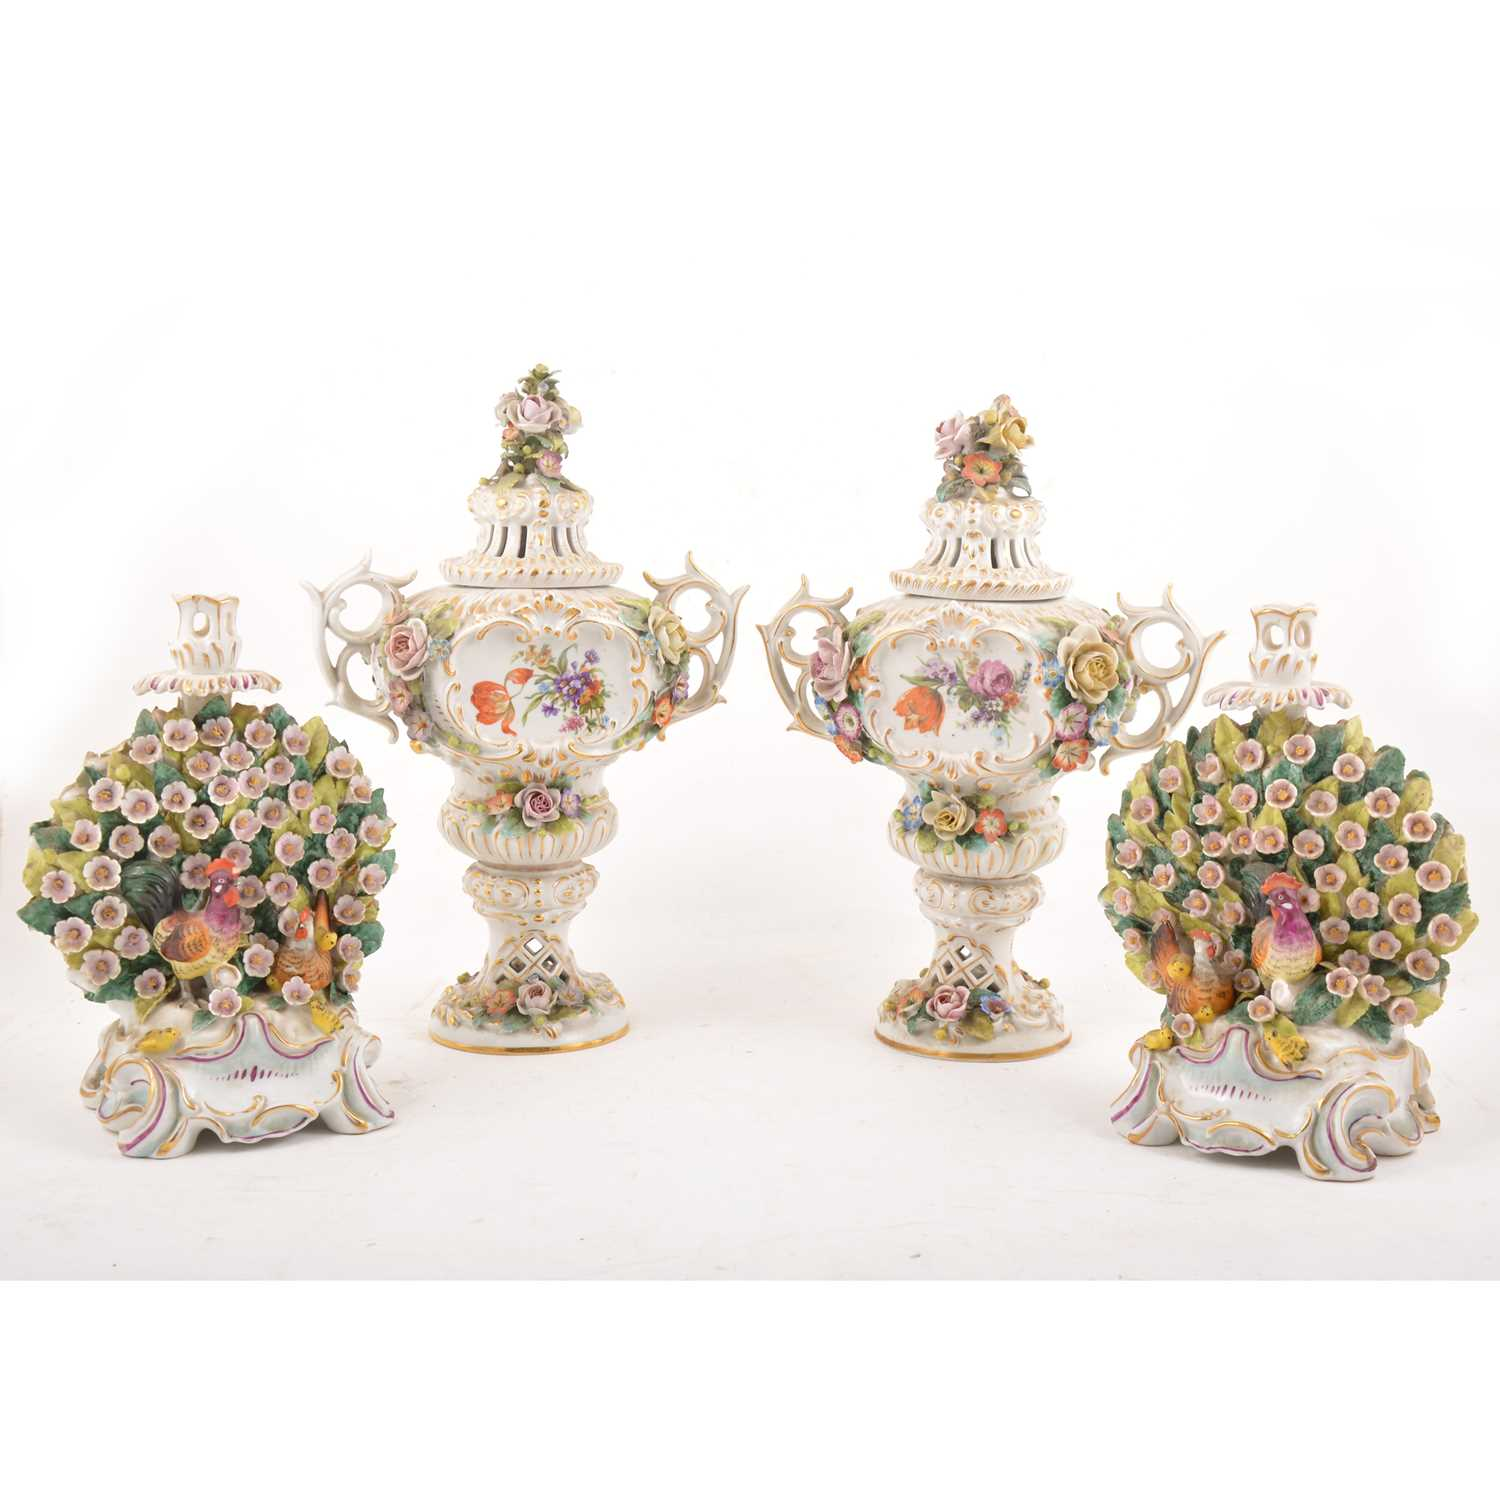 Lot 35 - Pair of Continental vases and covers, and a pair of Chelsea style bocage candlesticks